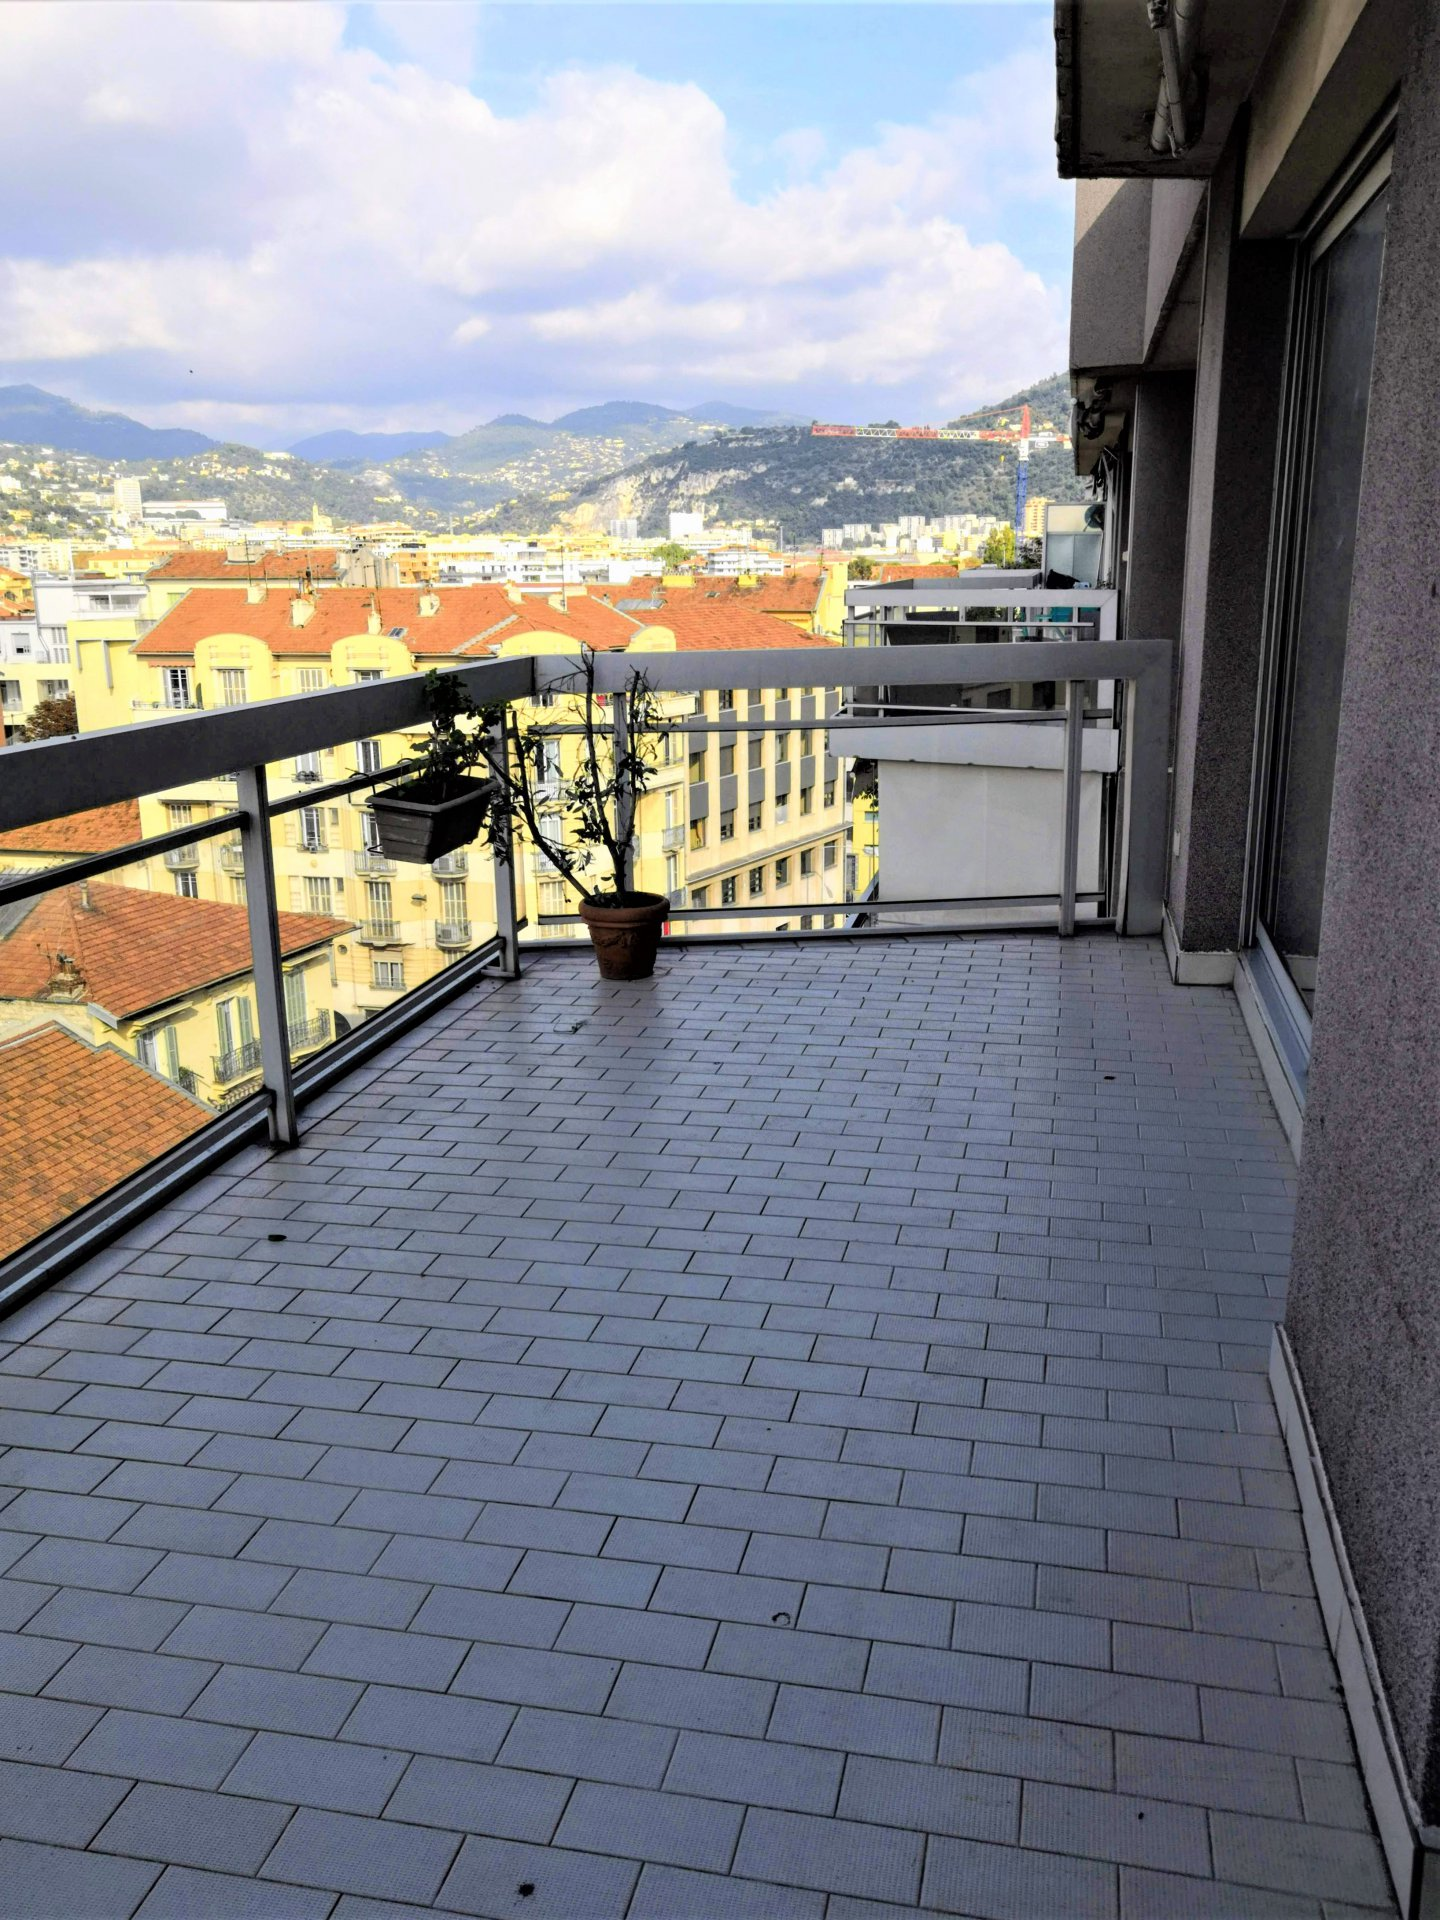 Nice Riquier - large 1 room apart - terrace and overwatching views